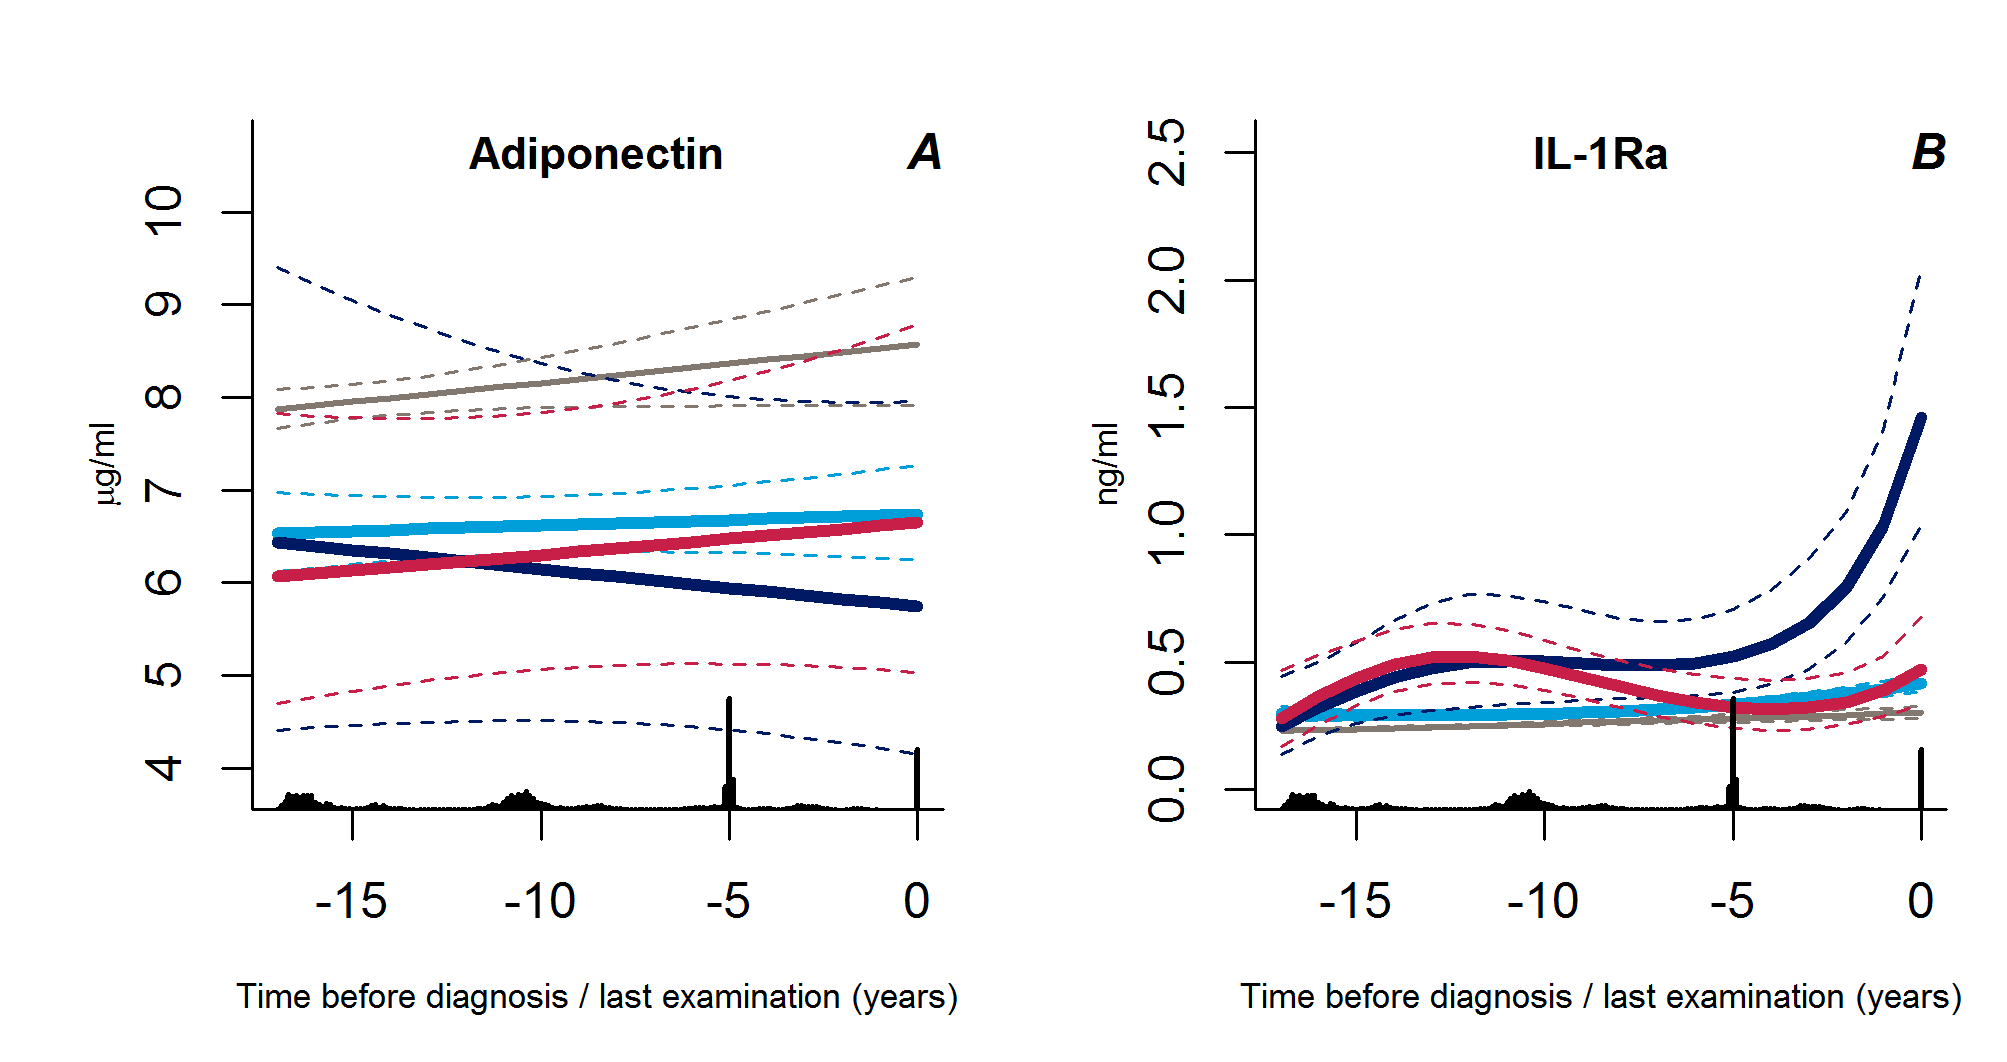 Trajectories for a hypothetical male of 60 years at time 0 of adiponectin (A) and IL-1Ra (B) from 18 years before time of diagnosis/last examination.